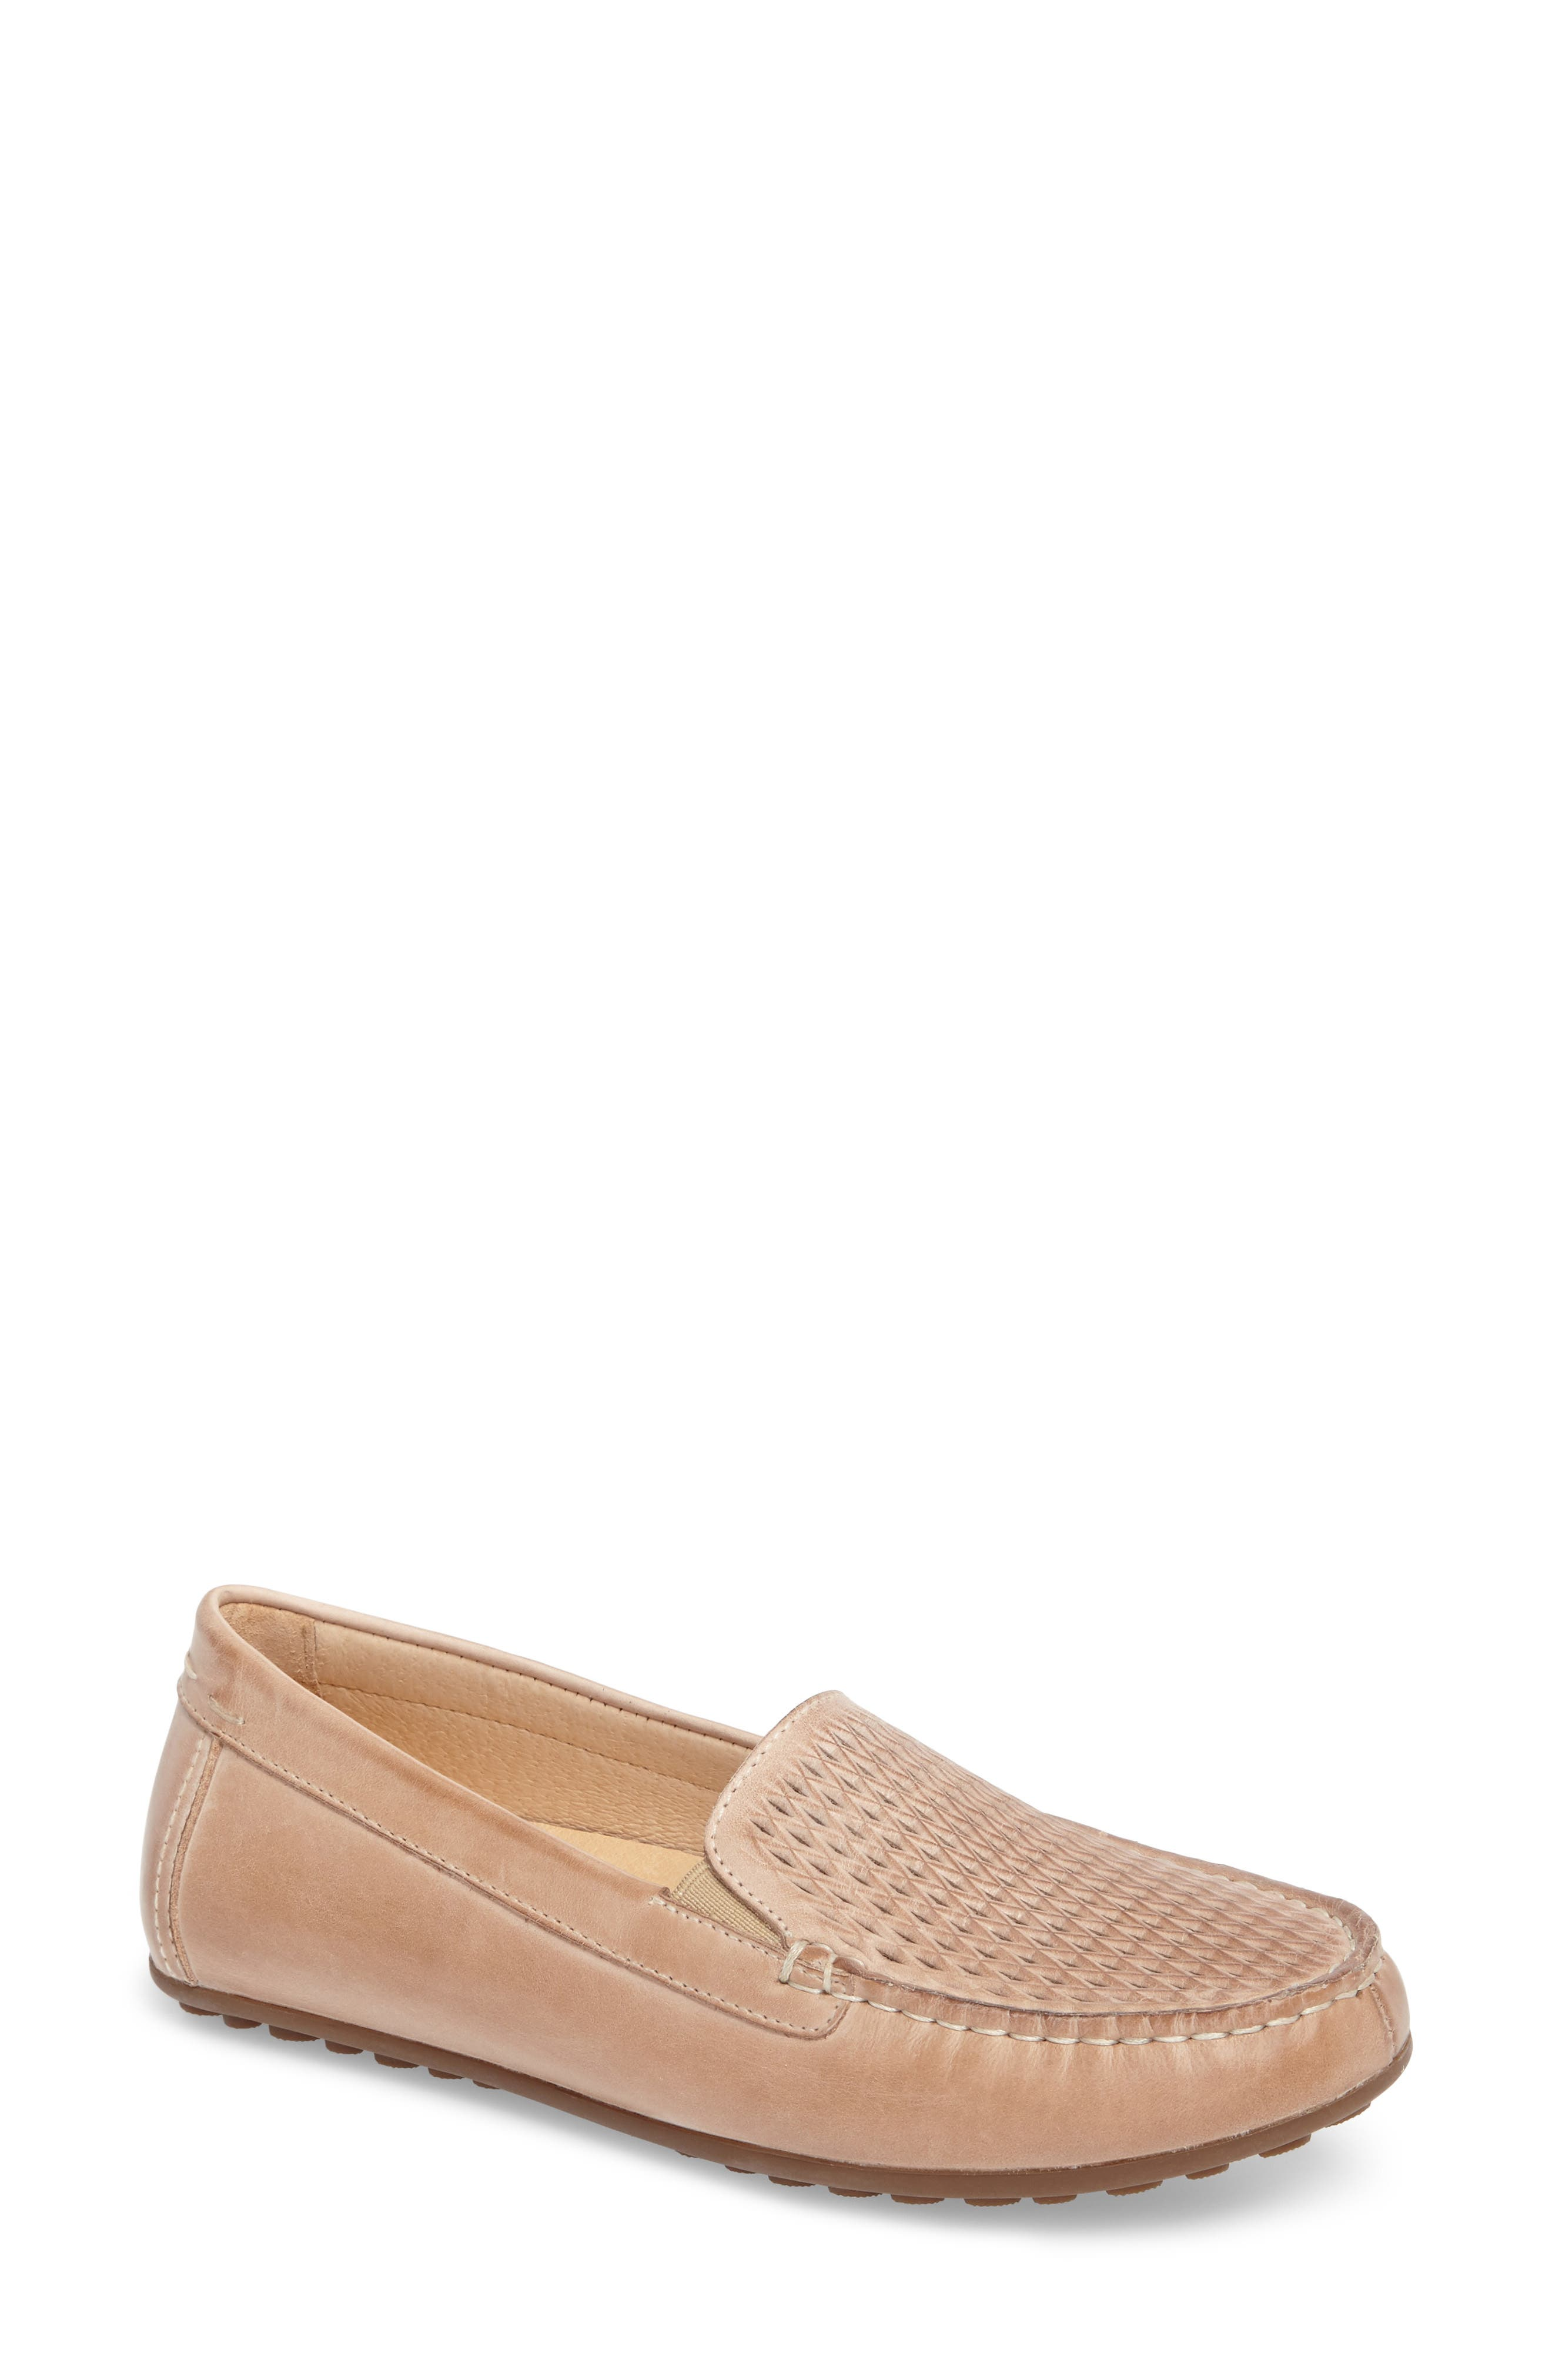 David Tate Posh Driving Loafer, Beige